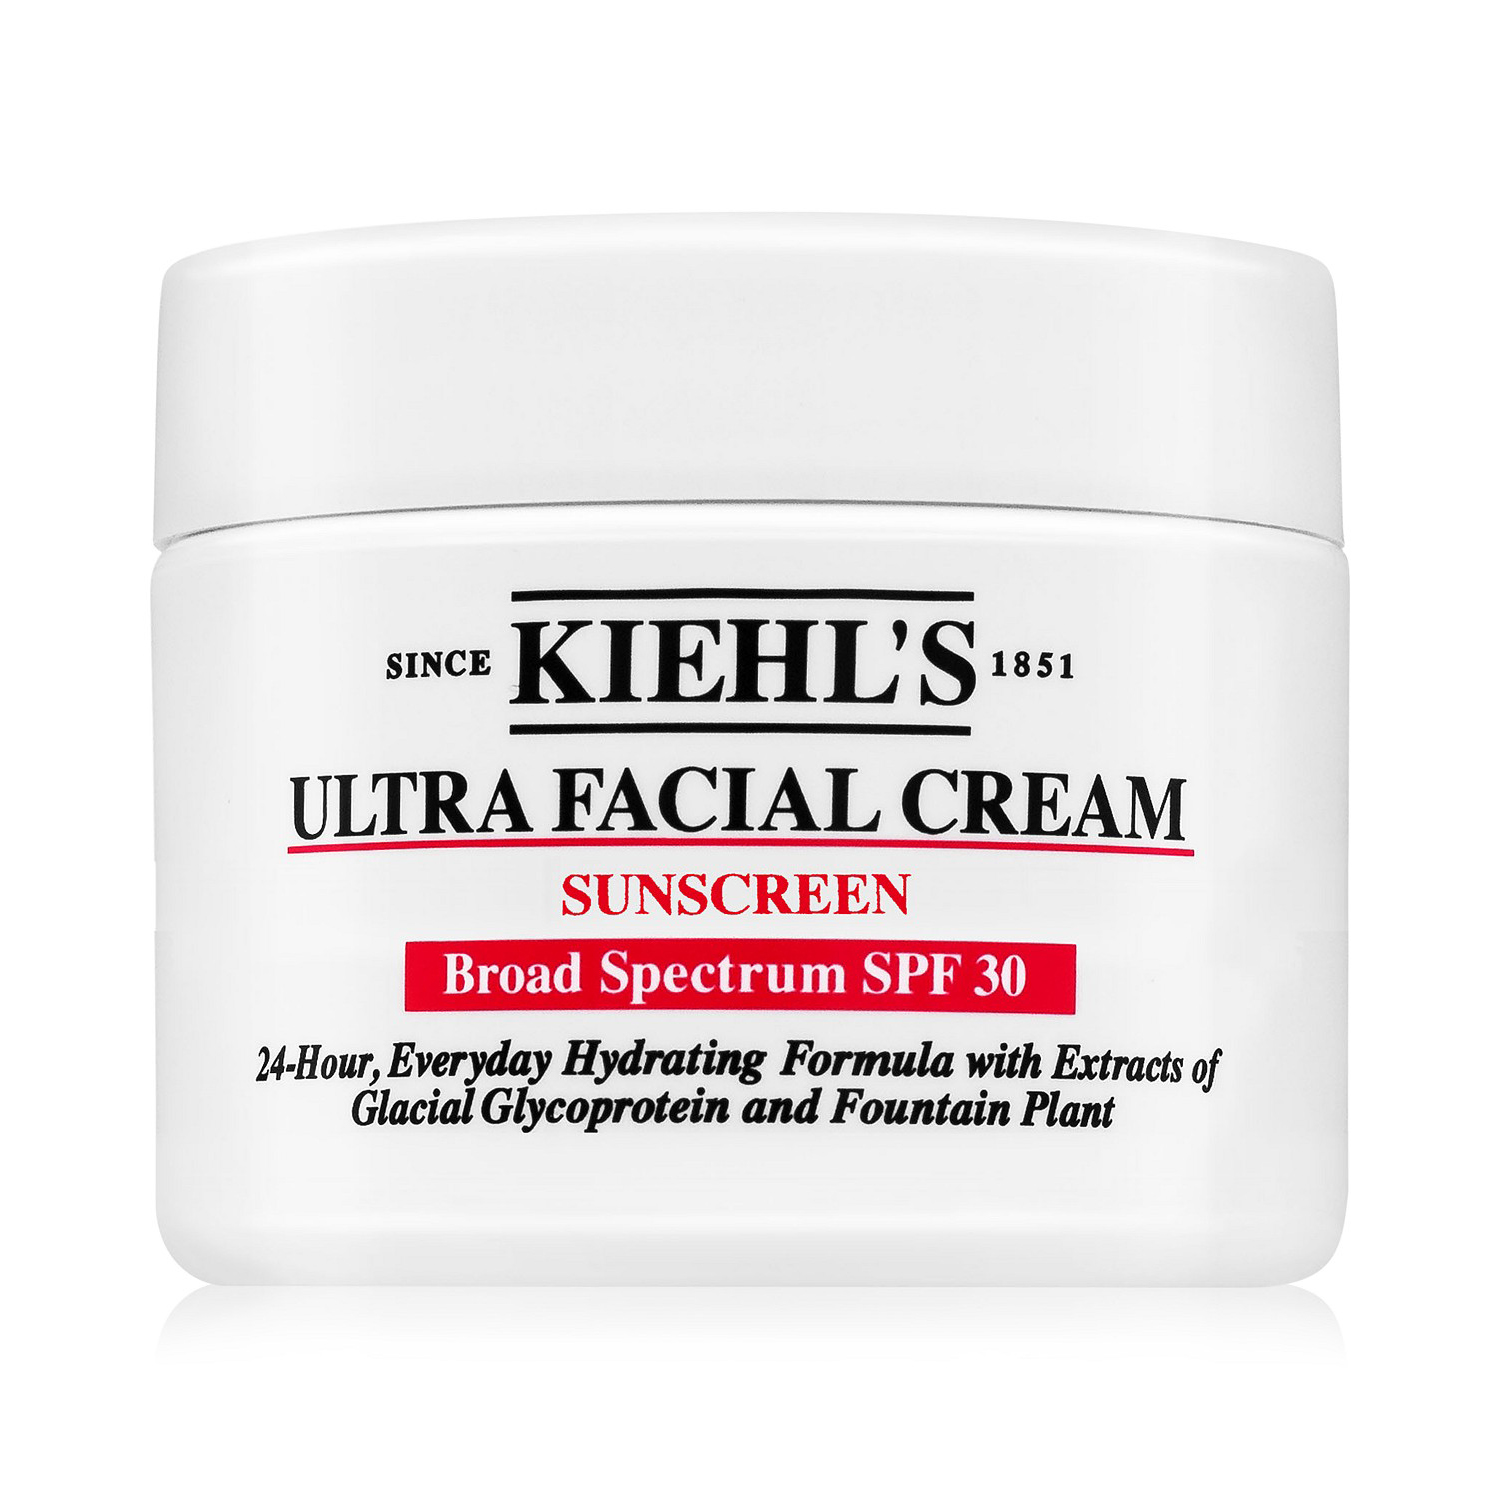 Kiehl's Ultra Facial Cream SPF 30